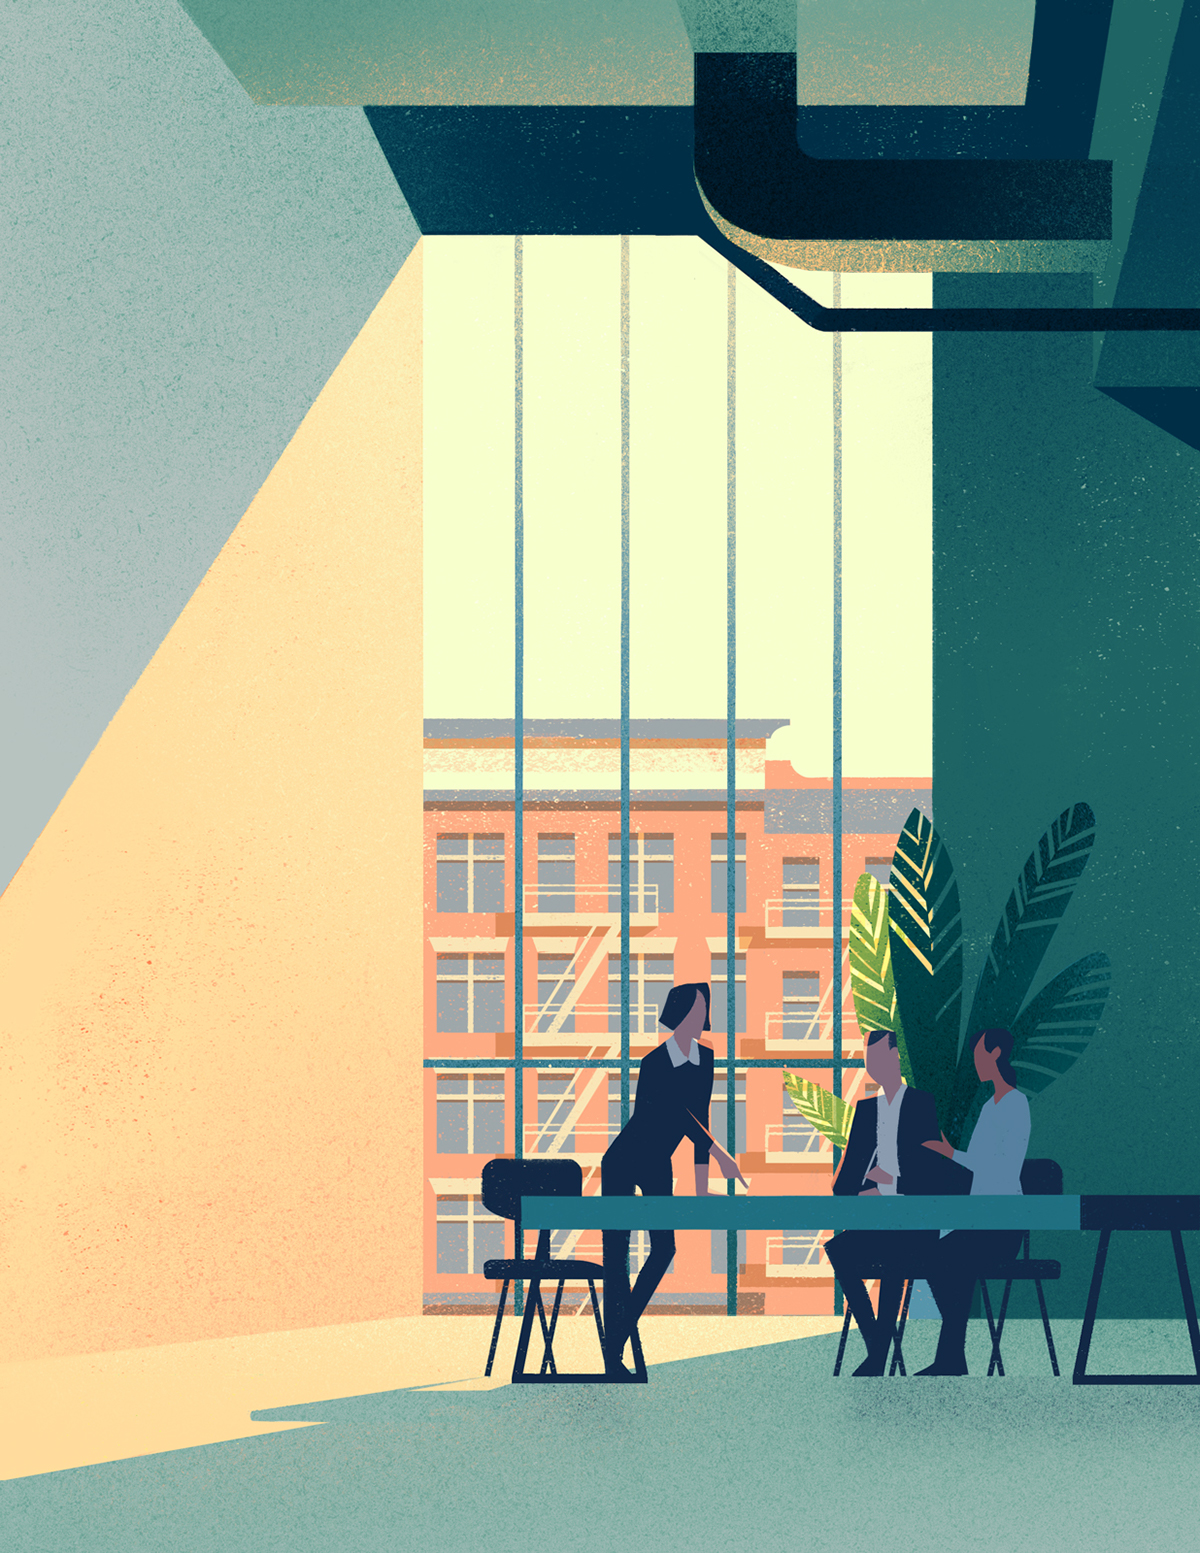 Office and Business Illustration on Behance